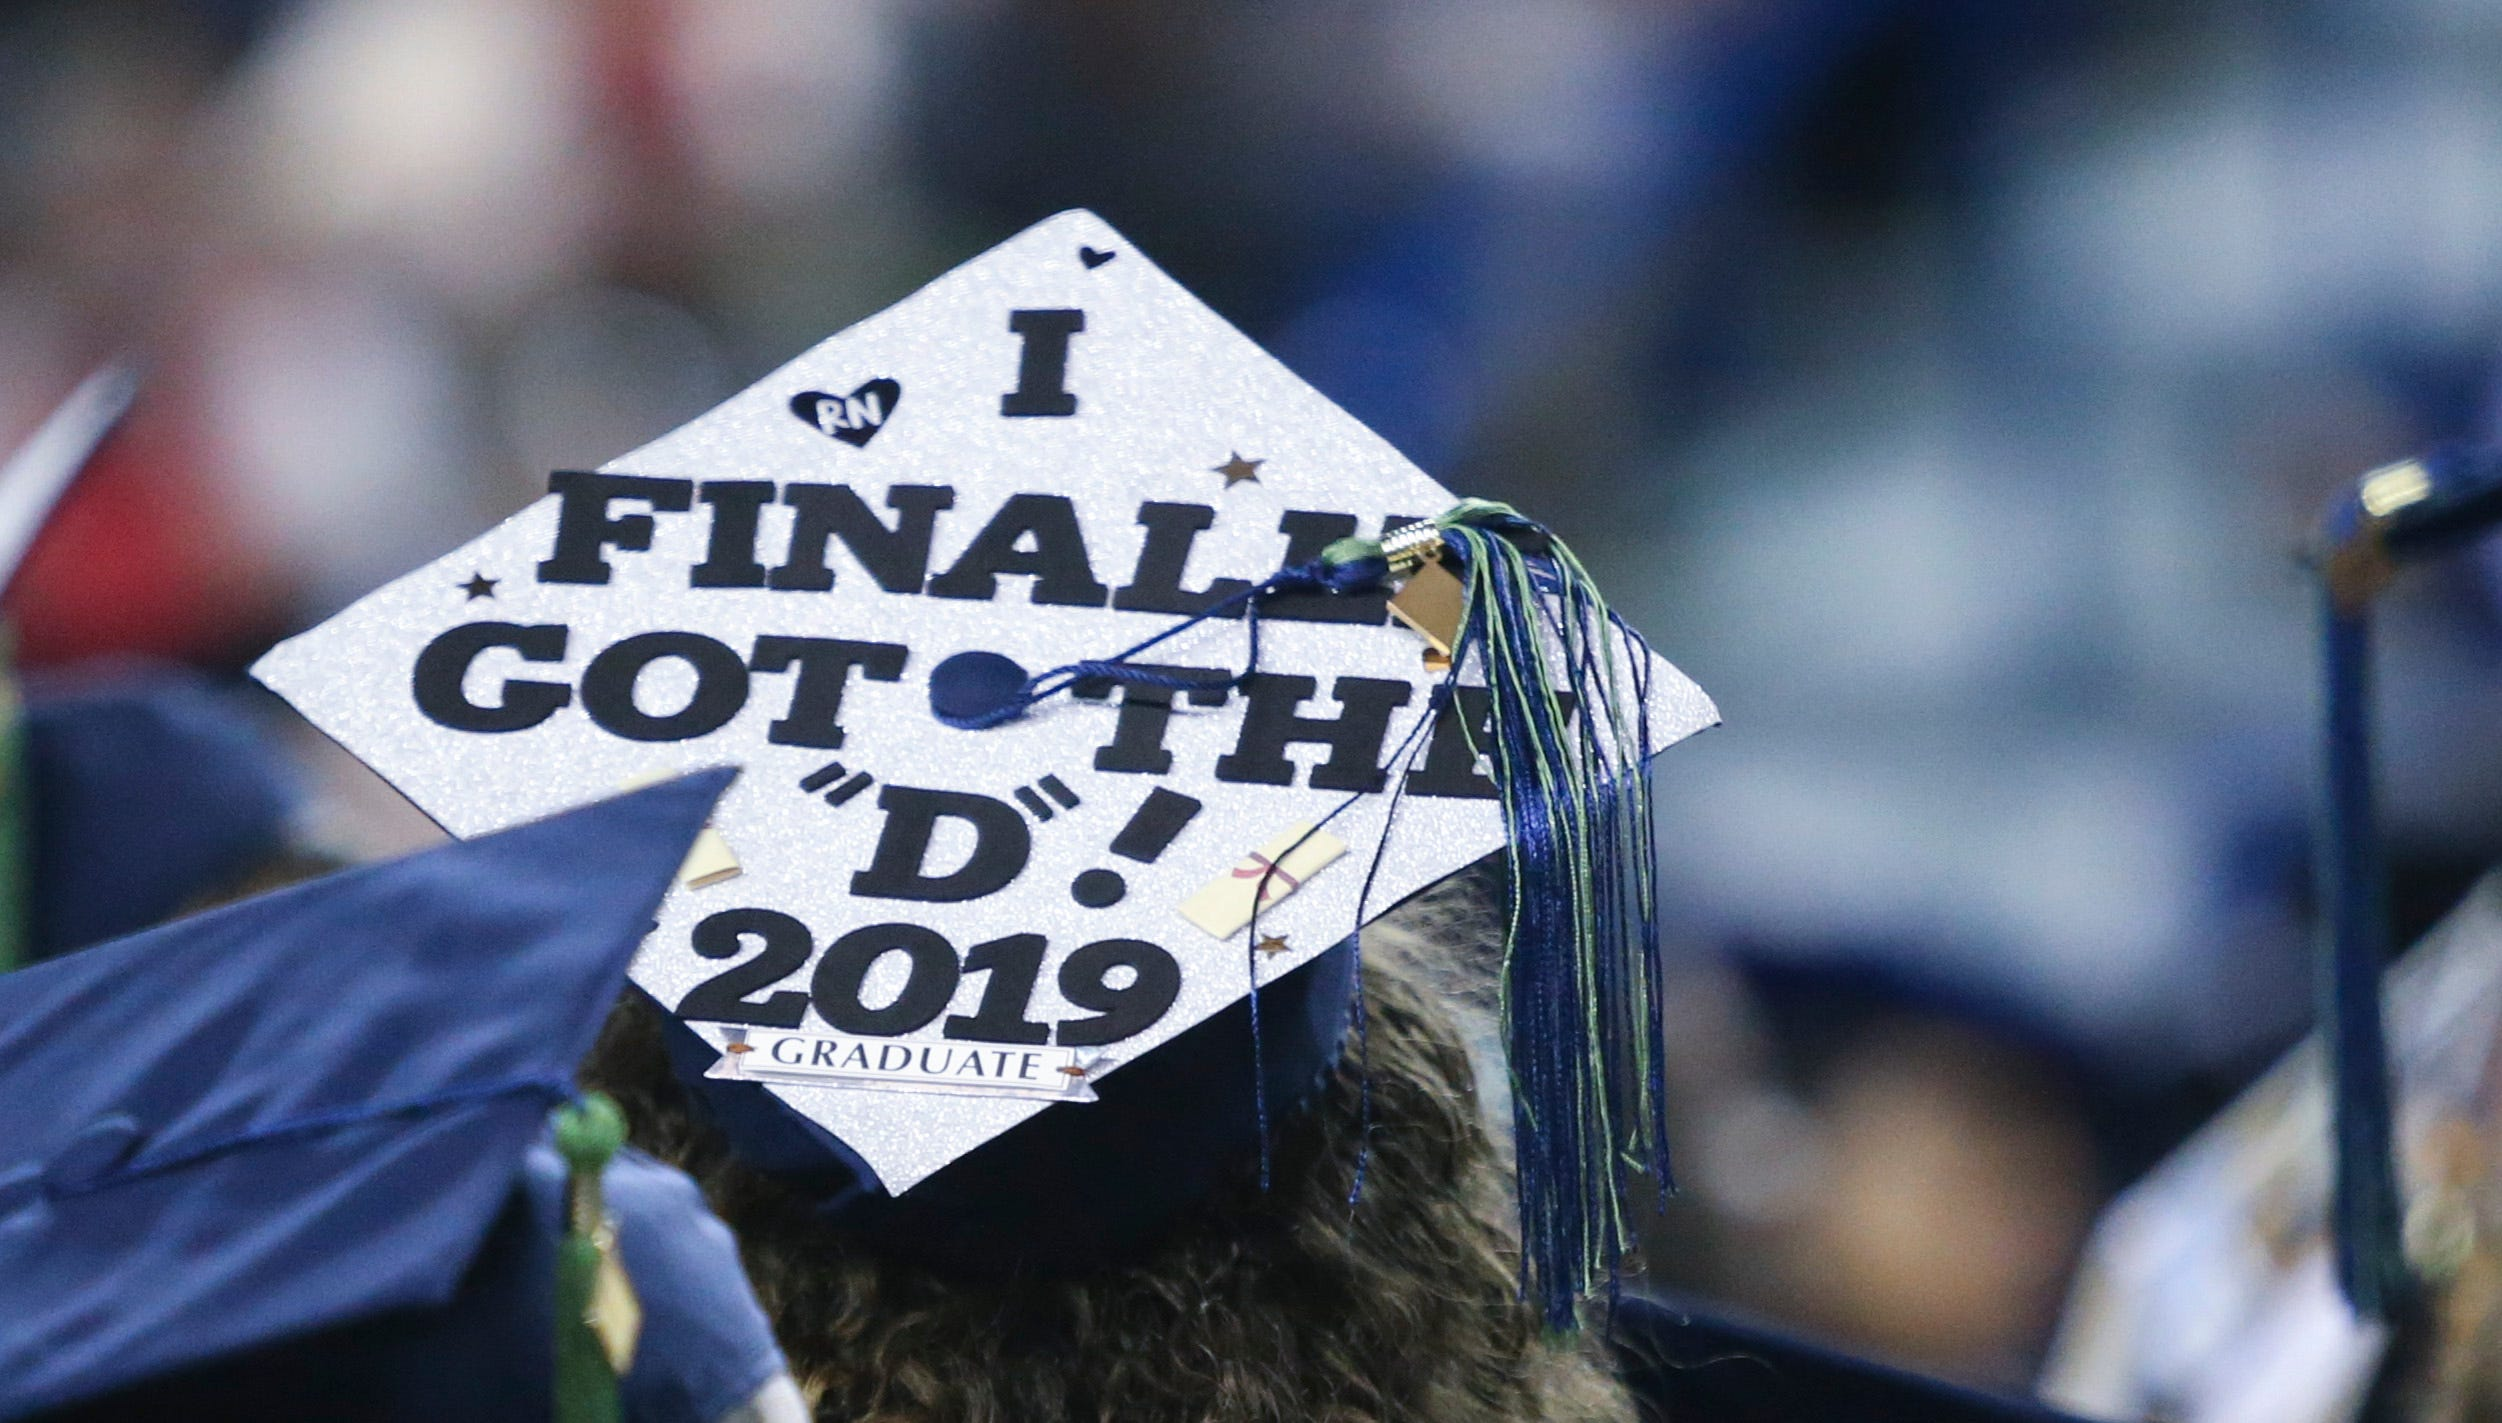 Delaware Technical Community College Stanton and George (Wilmington) campuses graduate nearly 700 students at its 2019 annual commencement at the Bob Carpenter Center Wednesday, May 15, 2019.